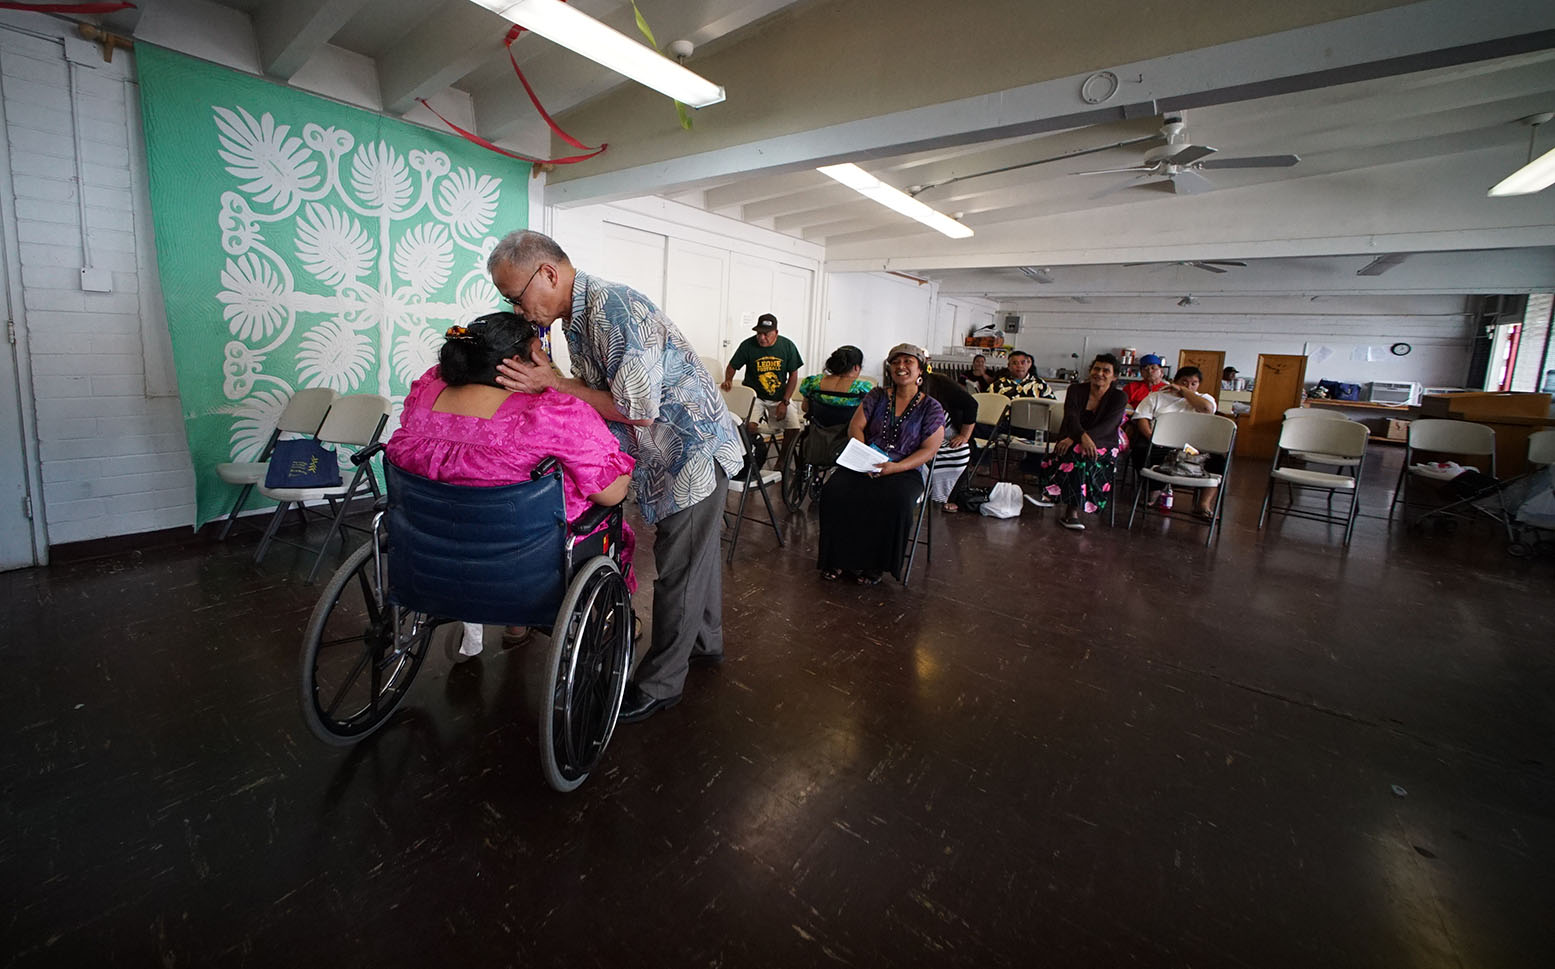 <p>Takesy, who lives in Washington, D.C., said it was important for him to take the time to help immigrants seeking services.</p>